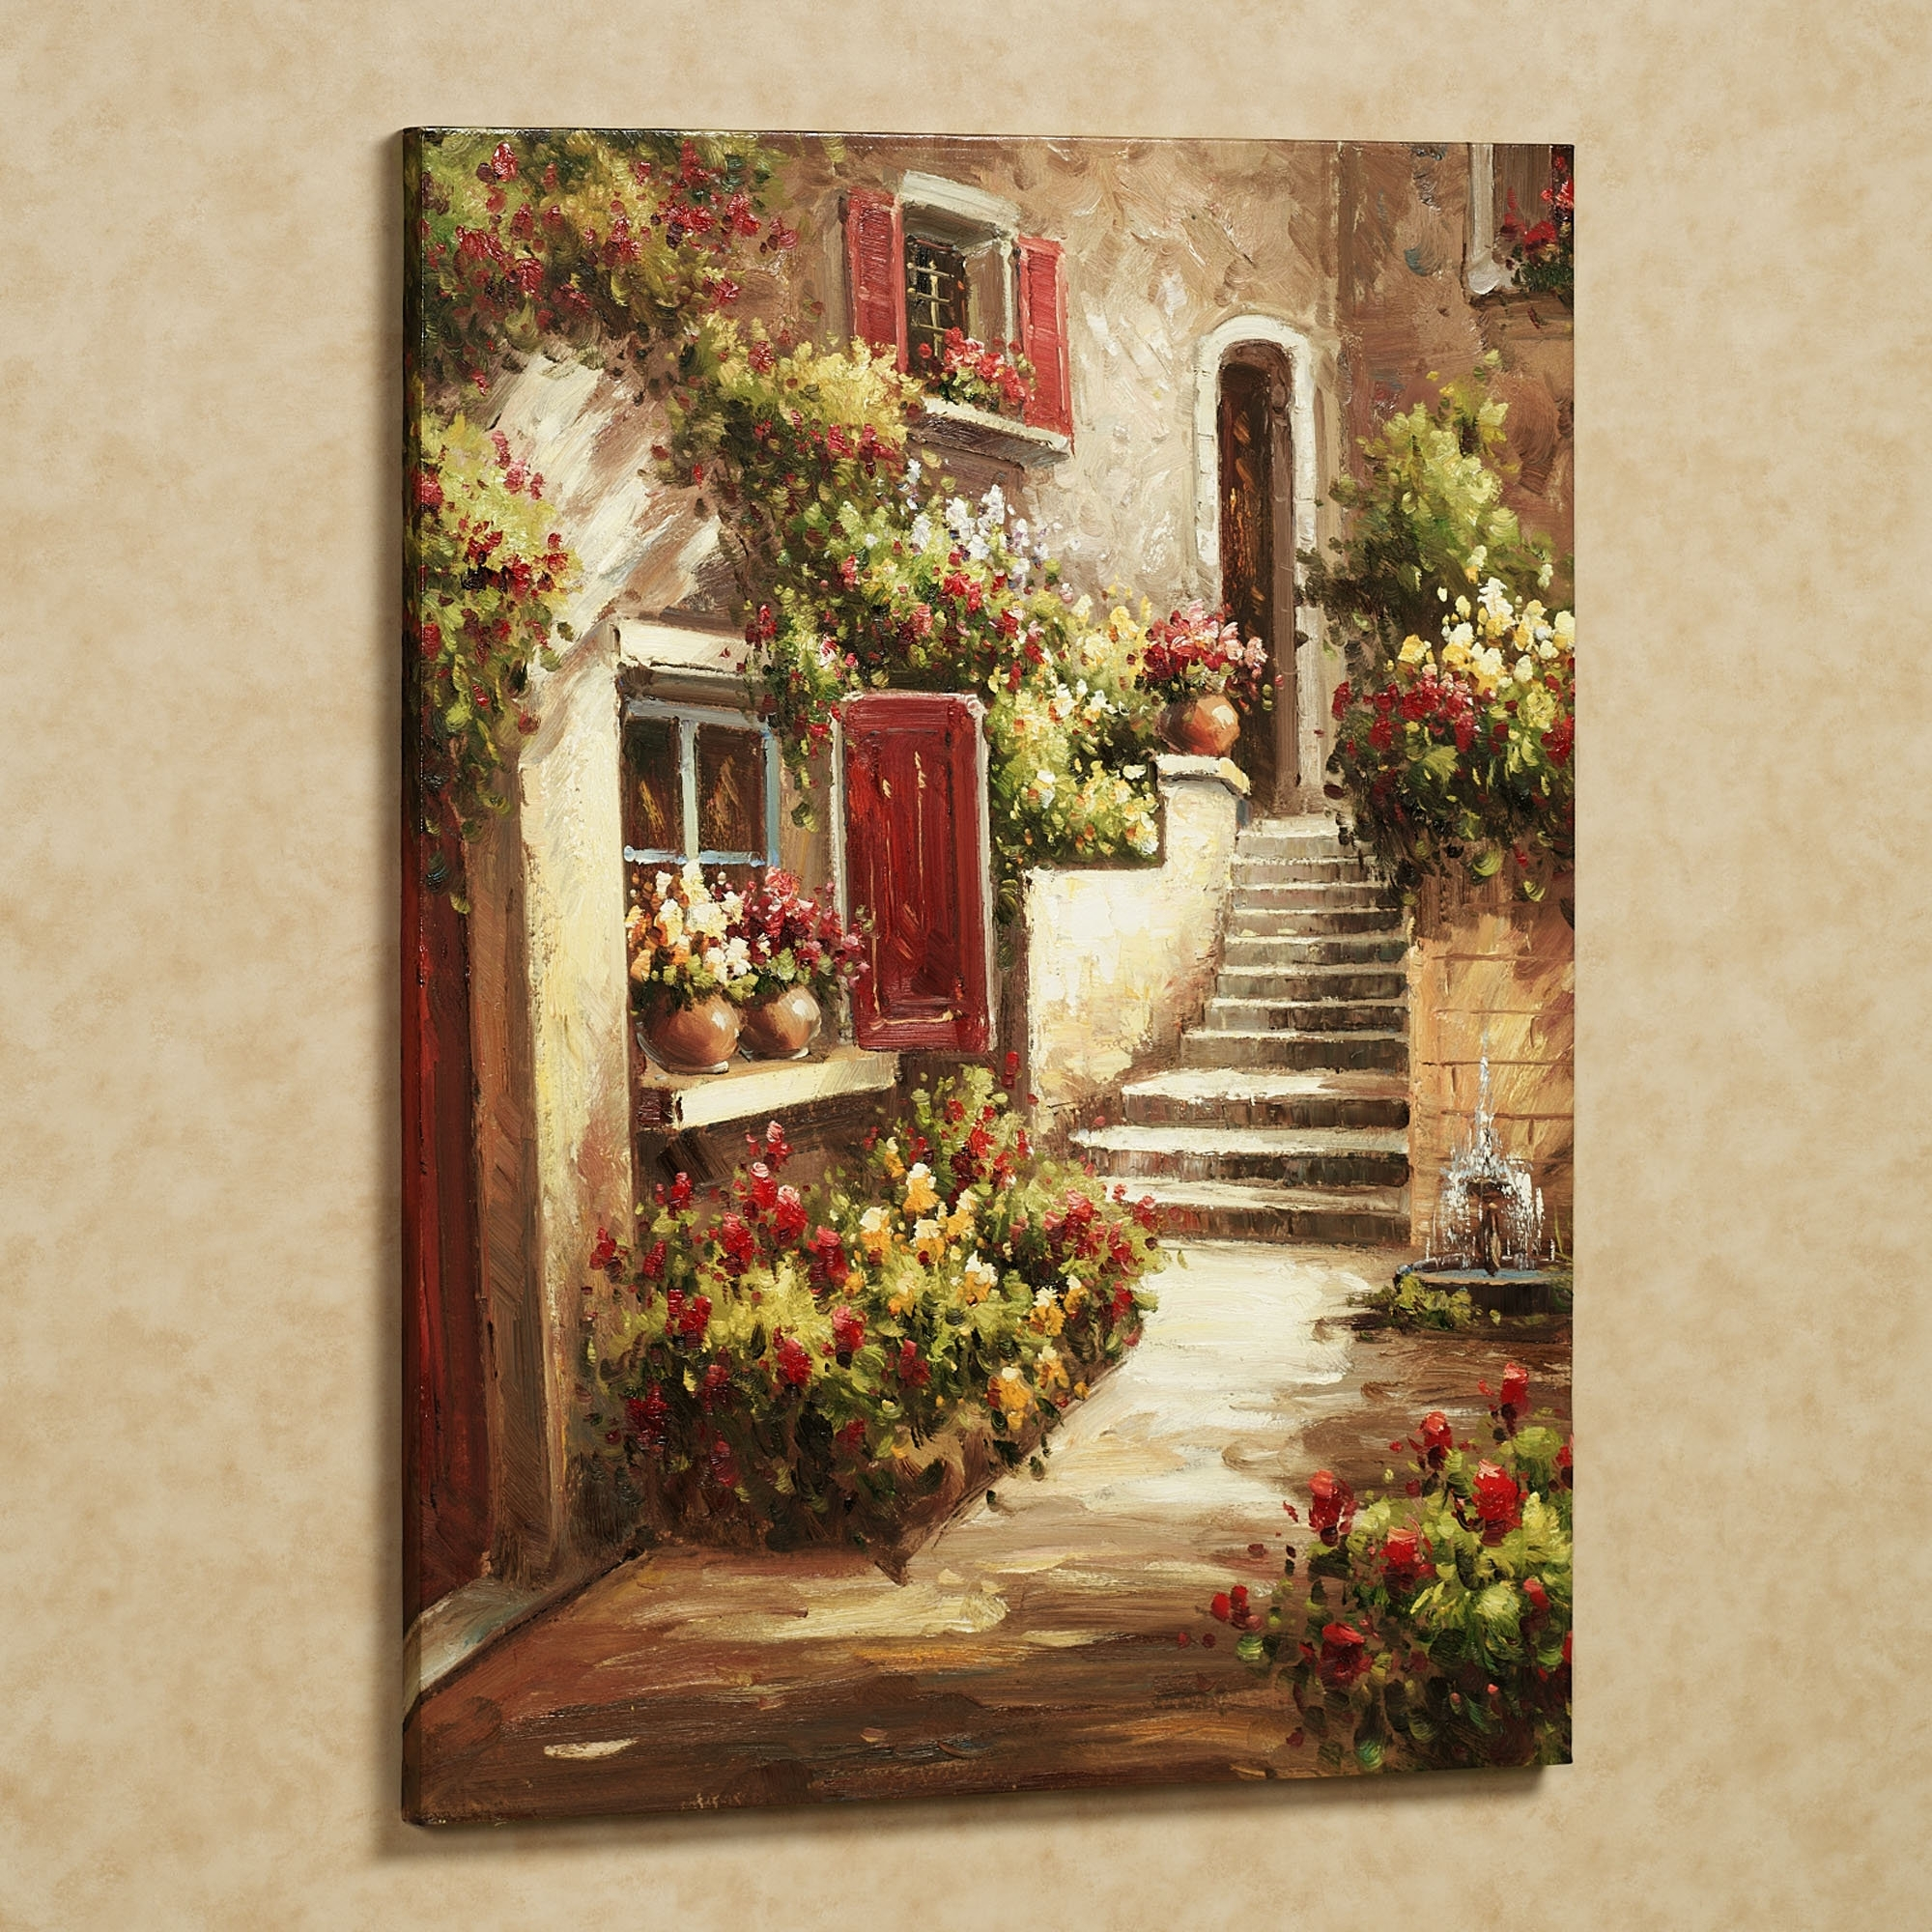 Tuscany Art | Home Tuscan Flowers Canvas Art Red | Art Tuscany With Most Up To Date Canvas Wall Art Of Italy (View 5 of 15)